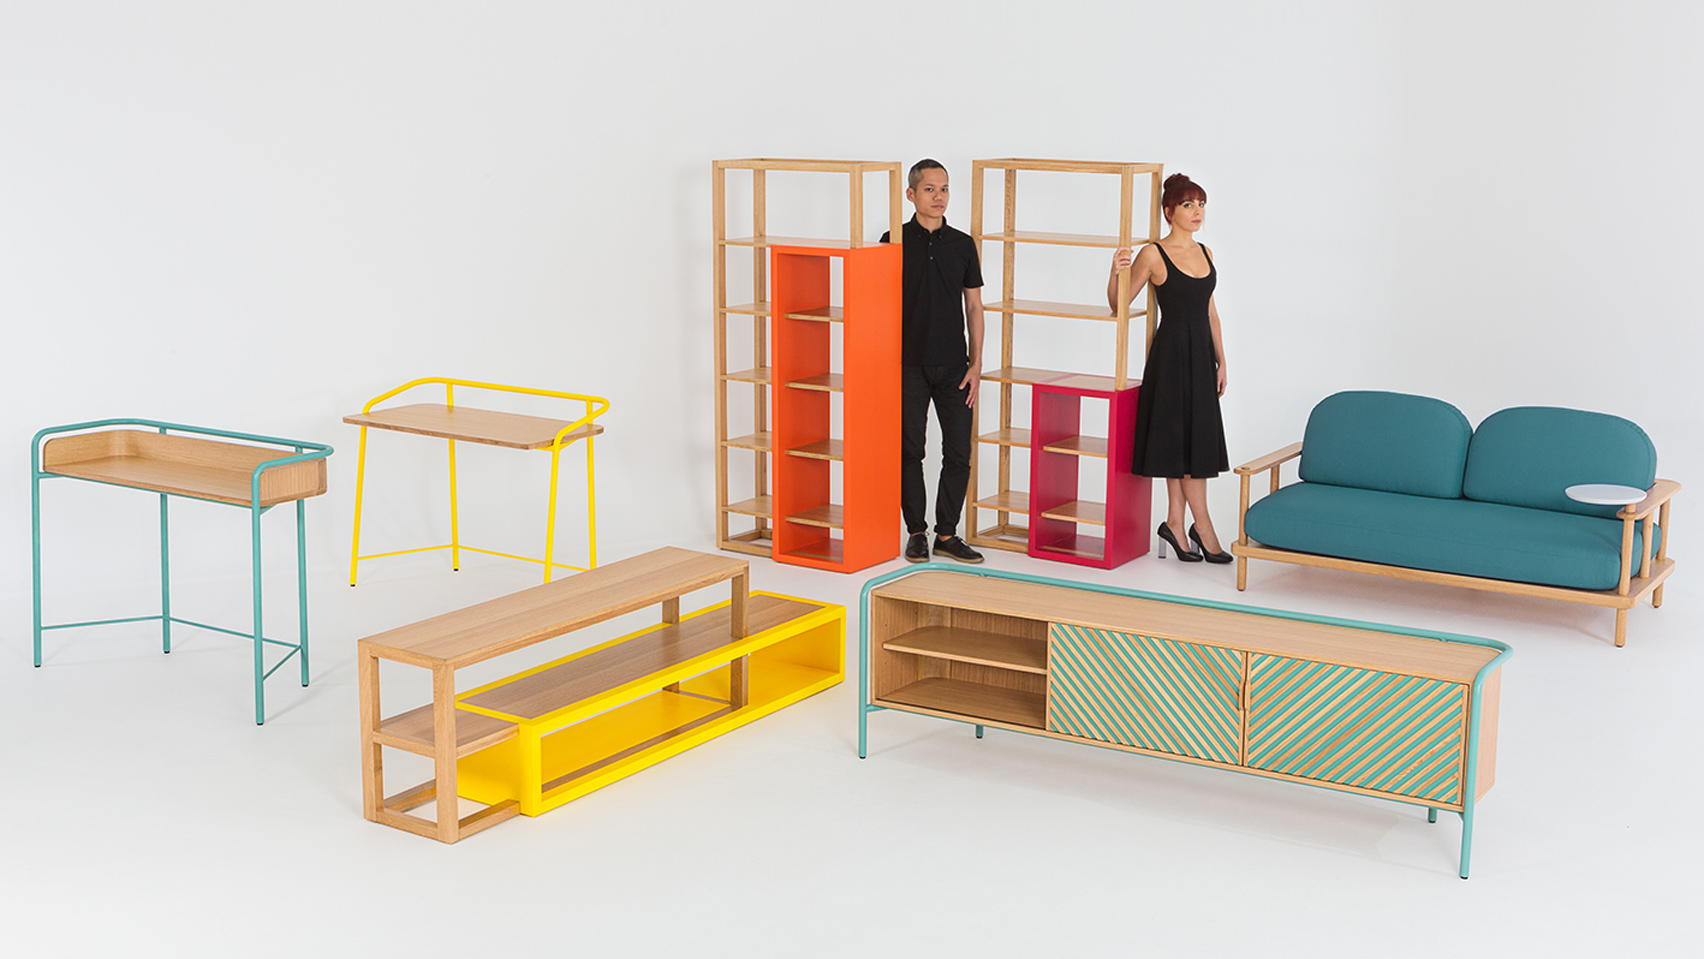 PLAYplay Collection 2 for Journey East by Lanzavecchia + Wai